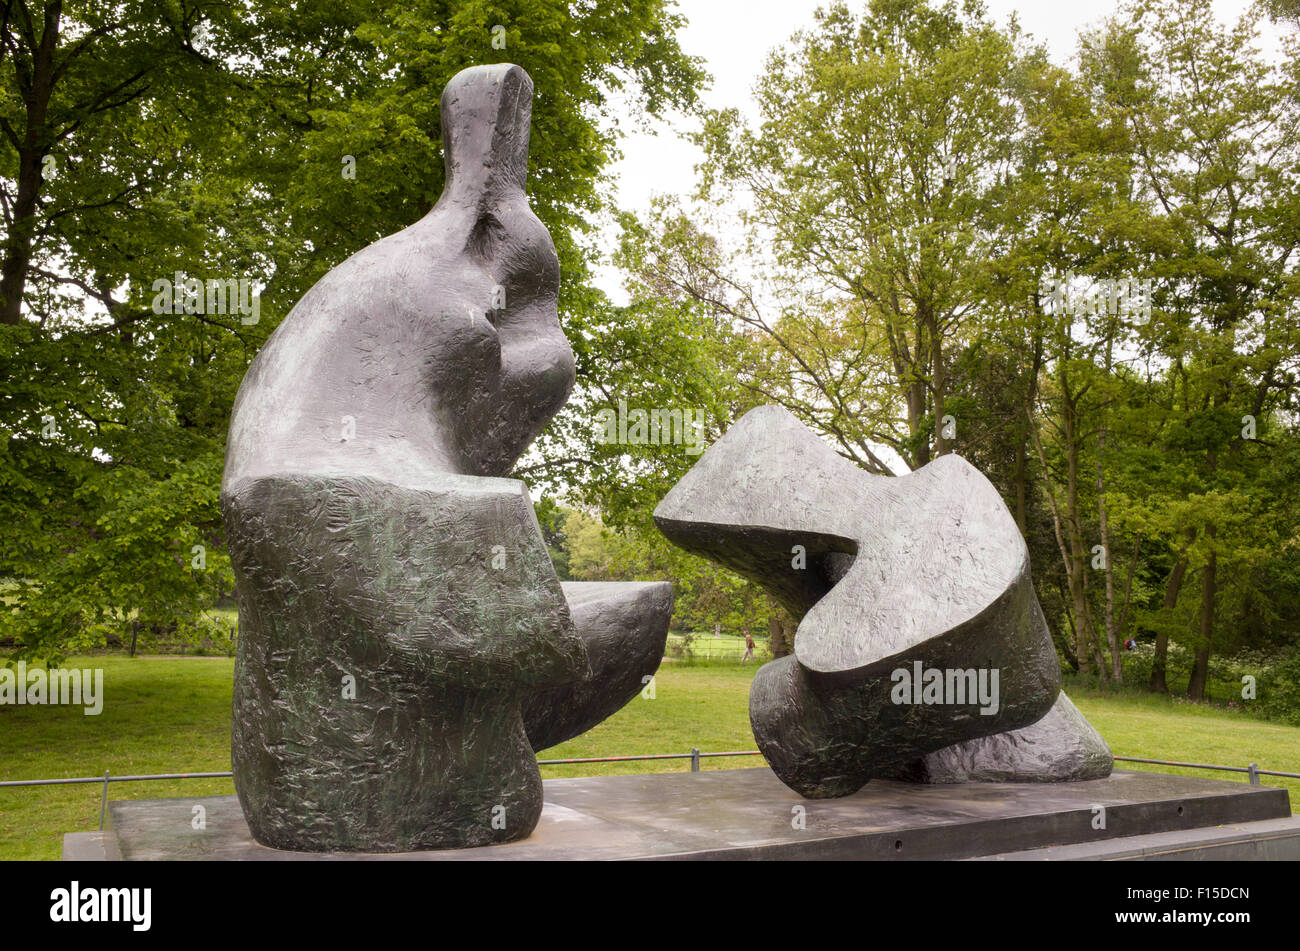 Two piece reclining figure sculpture by Henry Moore in the grounds of Kenwood House, Hampstead Heath, London, England, - Stock Image